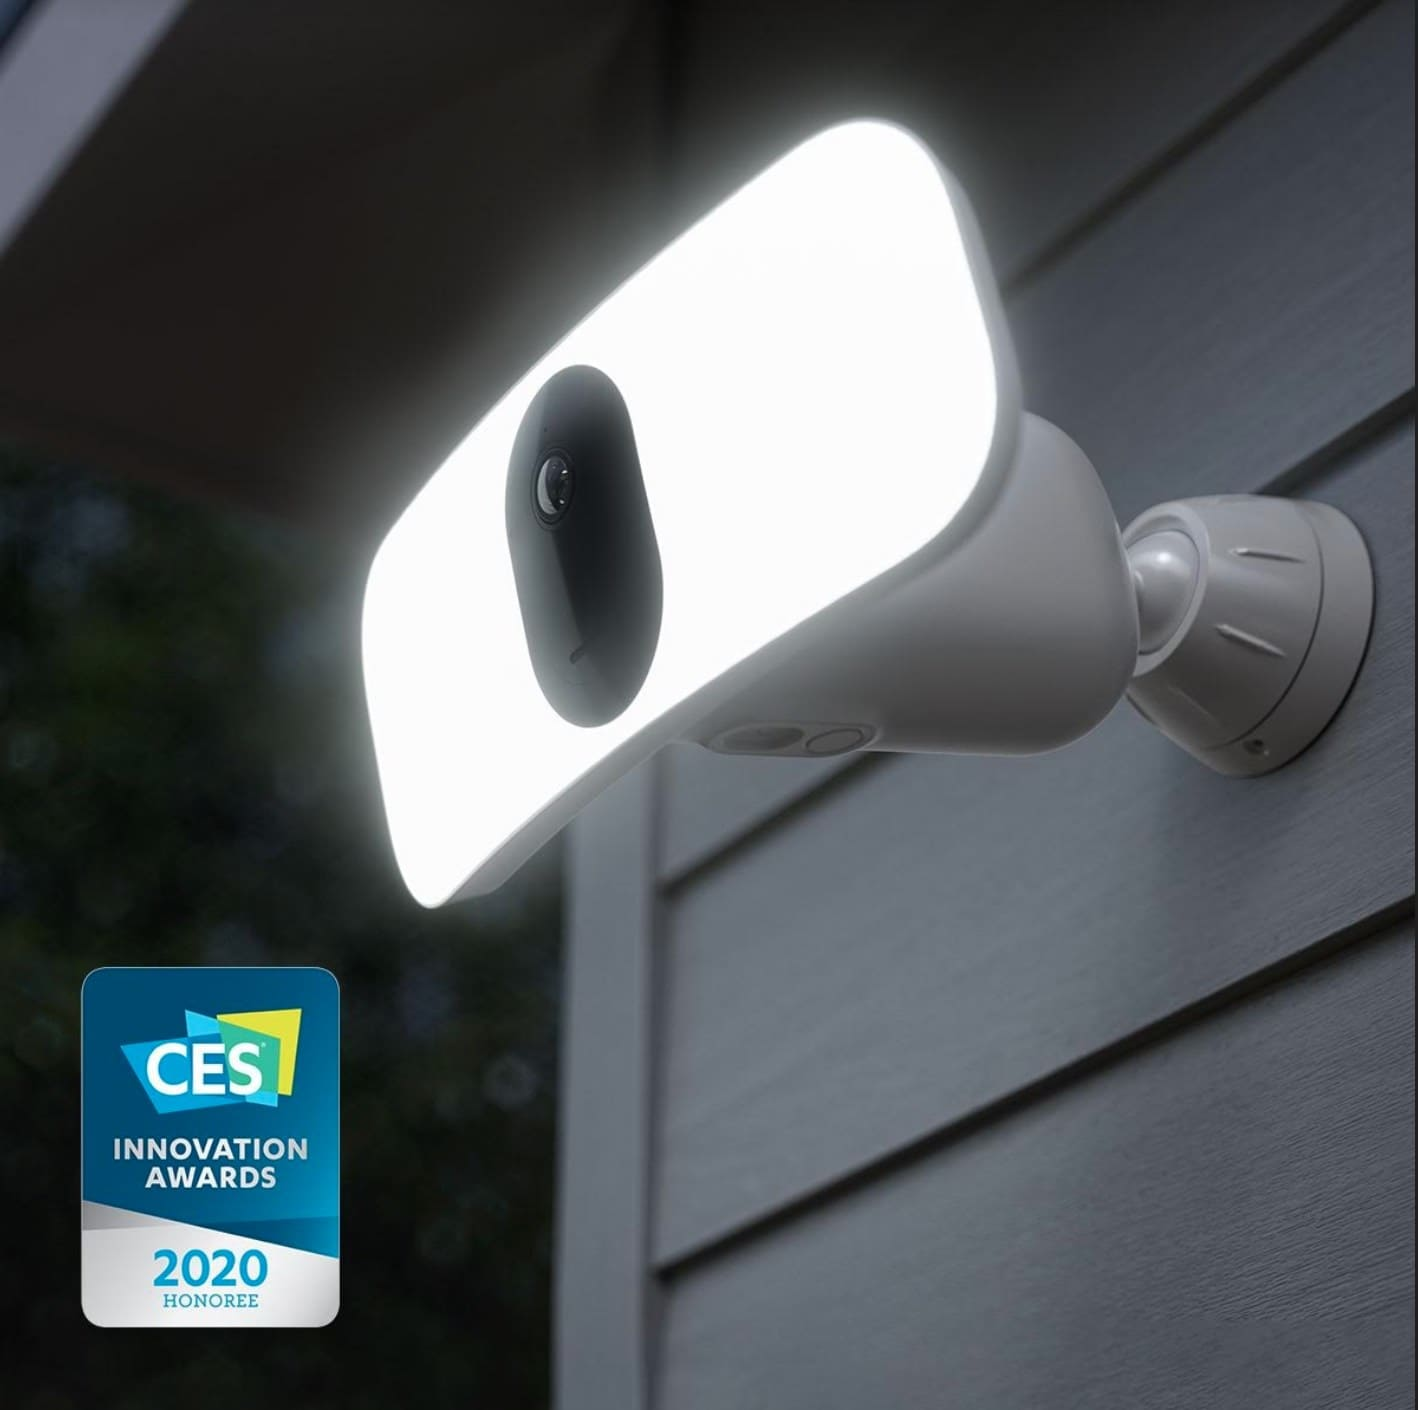 Arlo announces their first floodlight security camera and it's wire-free – Arlo Pro 3 Floodlight Camera